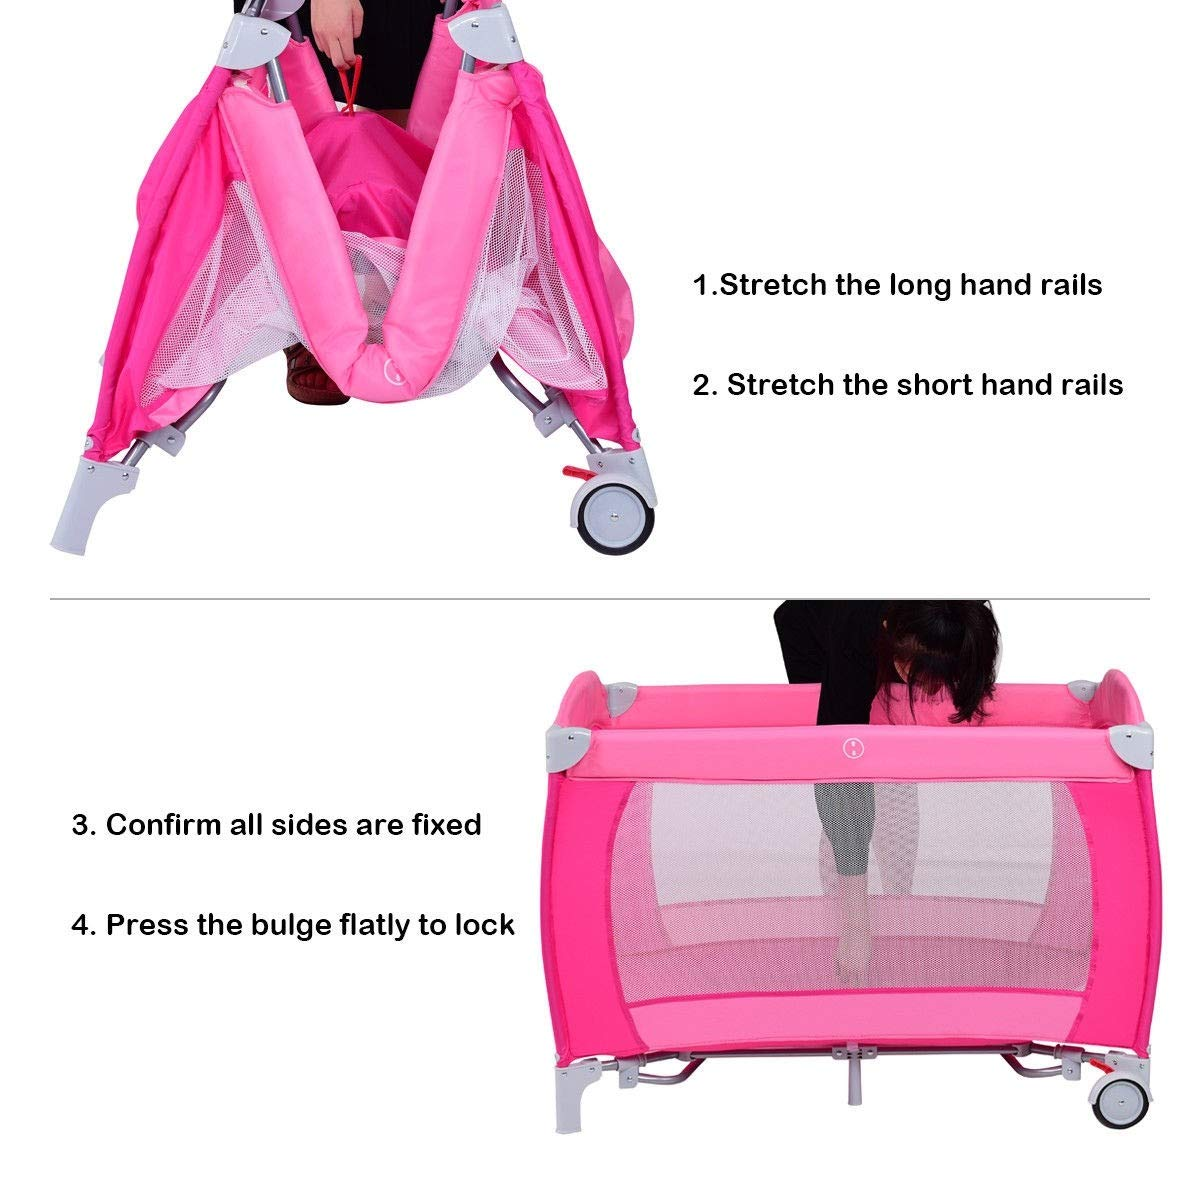 LHONE Portable Foldable Travel Baby Crib Playpen Baby 3 in One Crib Playpen Travel Playpen Changer w/Mosquito Net and Carring Bag (Pink) by LHONE (Image #5)